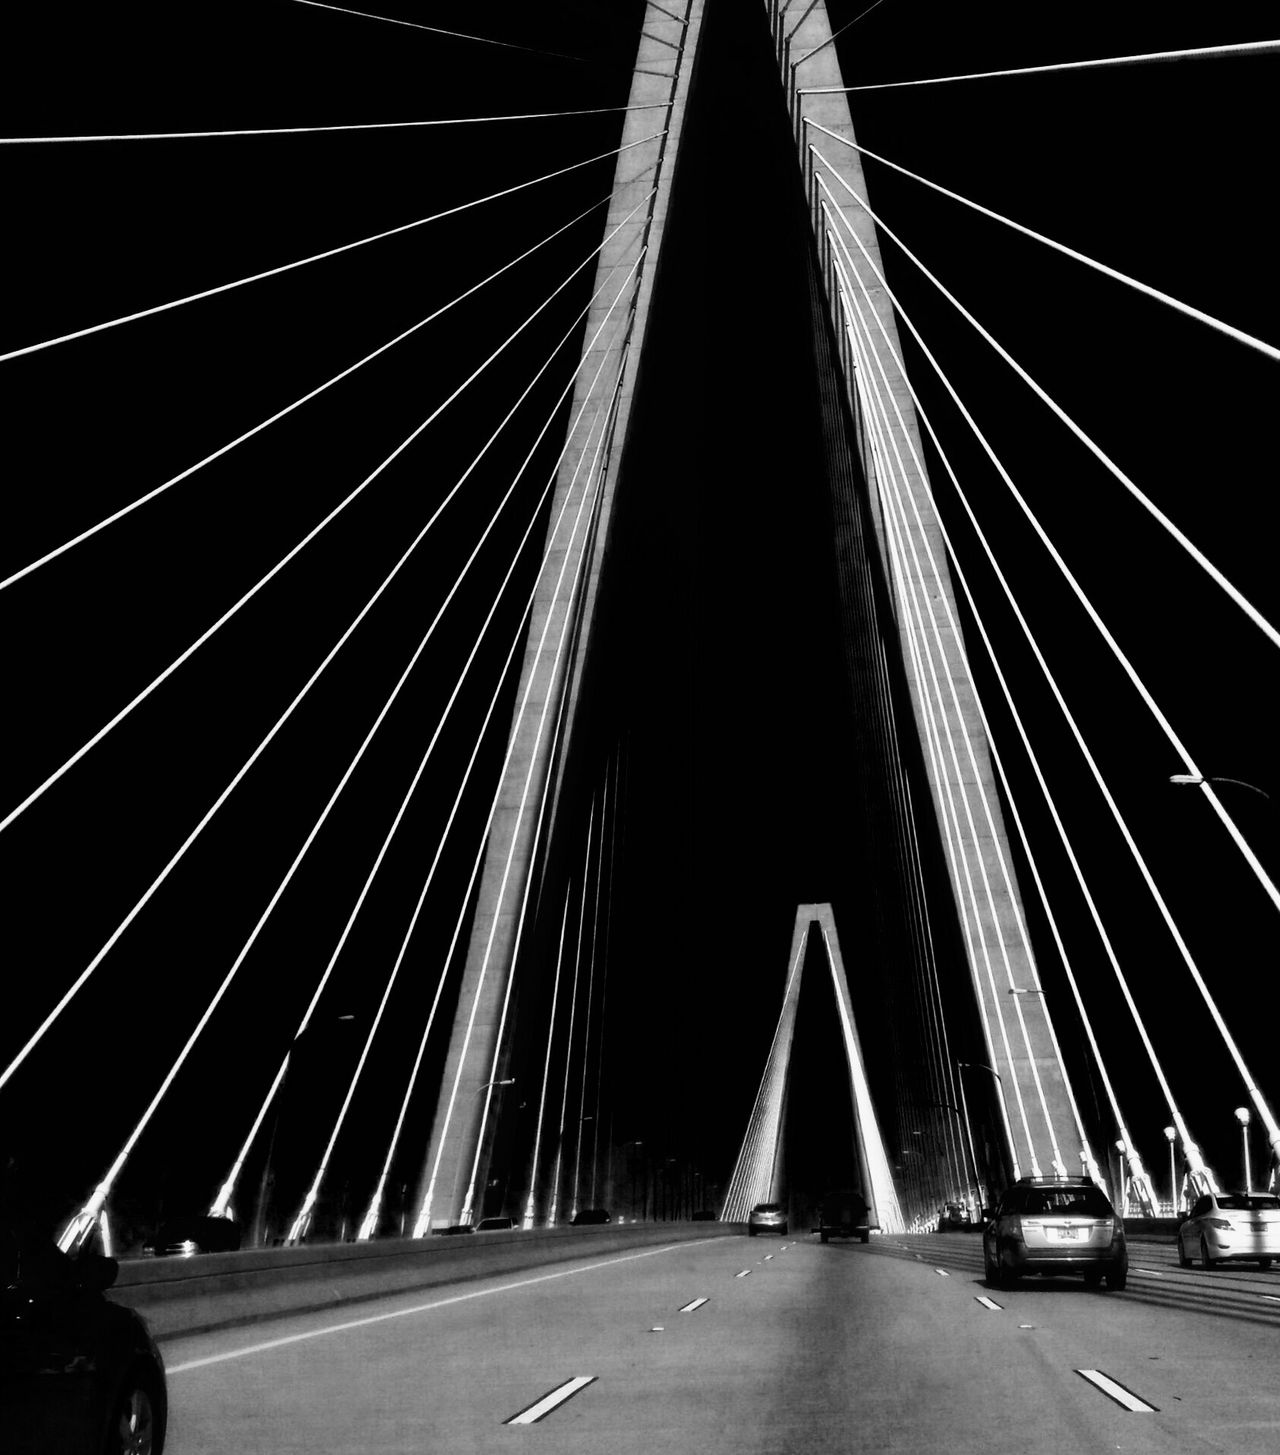 Bridge at night Bridge Bridge - Man Made Structure Bridge View Bridgesaroundtheworld Charleston Roadtrip Carefree Car Sharing Carpooling Drivebyphotography Car Travel Automobile Traveling Travel Destinations Traffic Arthur Ravenel Jr Bridge Construction Vehicle Photography Mode Of Transport